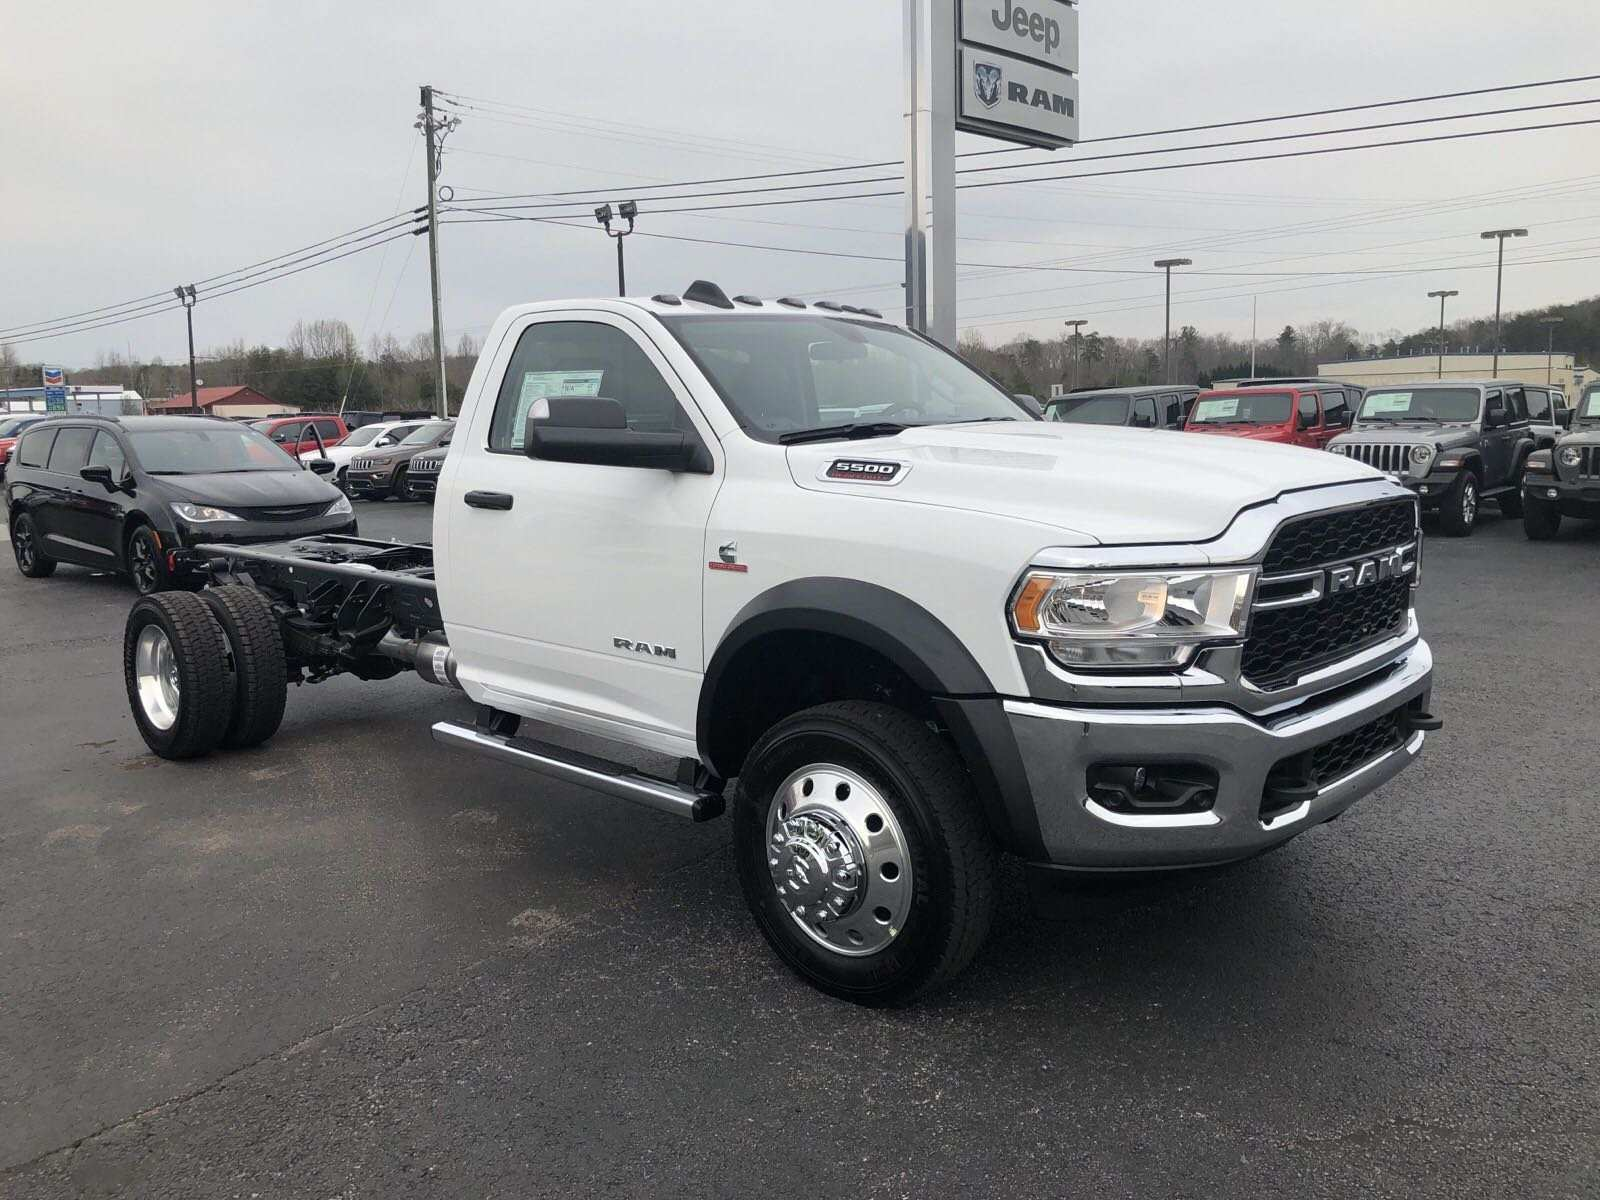 19 New 2019 Dodge 5500 For Sale Release Date